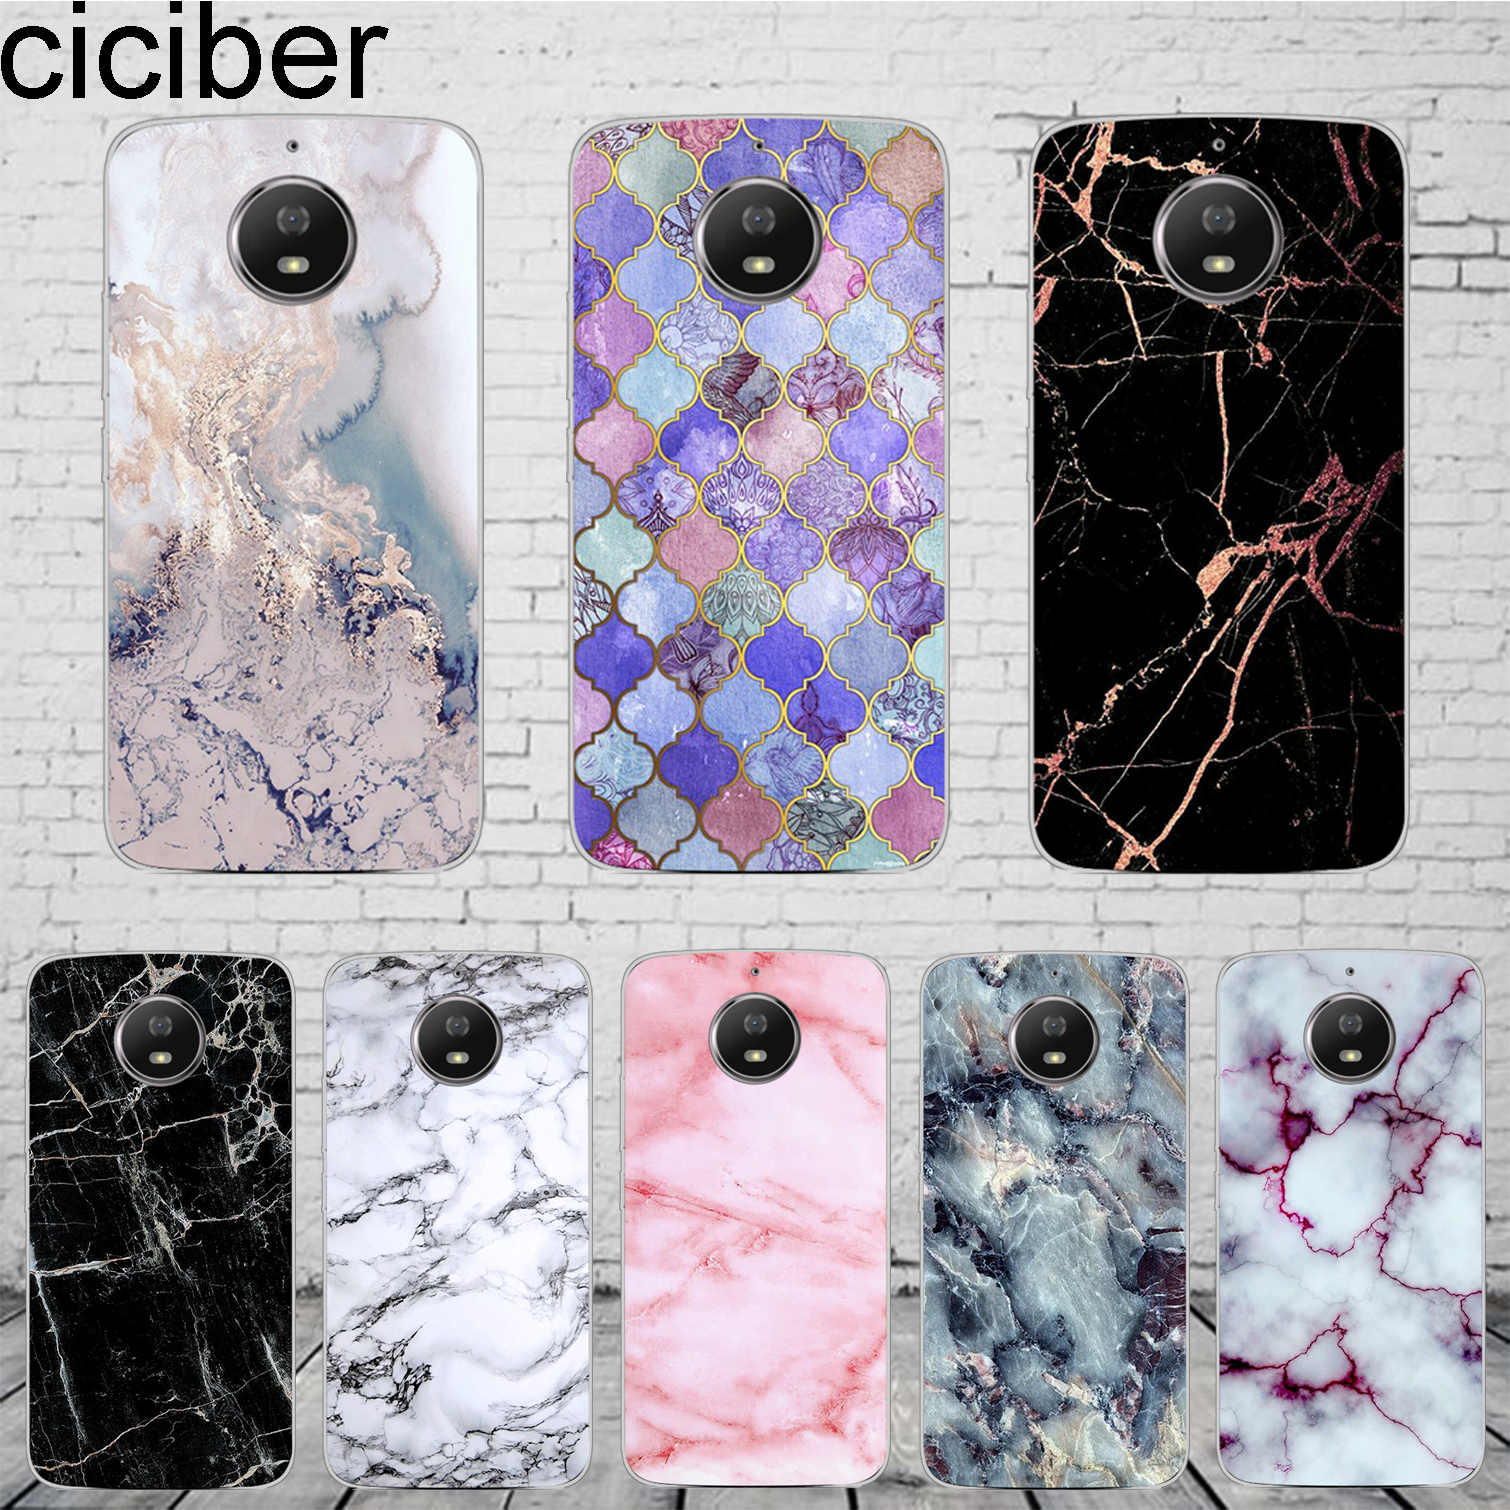 ciciber Colored Marble Cover For Motorola Moto C Z2 Z3 ONE P30 G4 G5 G5S G6 E3 E4 E5 Play Plus Power M X4 Phone Case Soft TPU